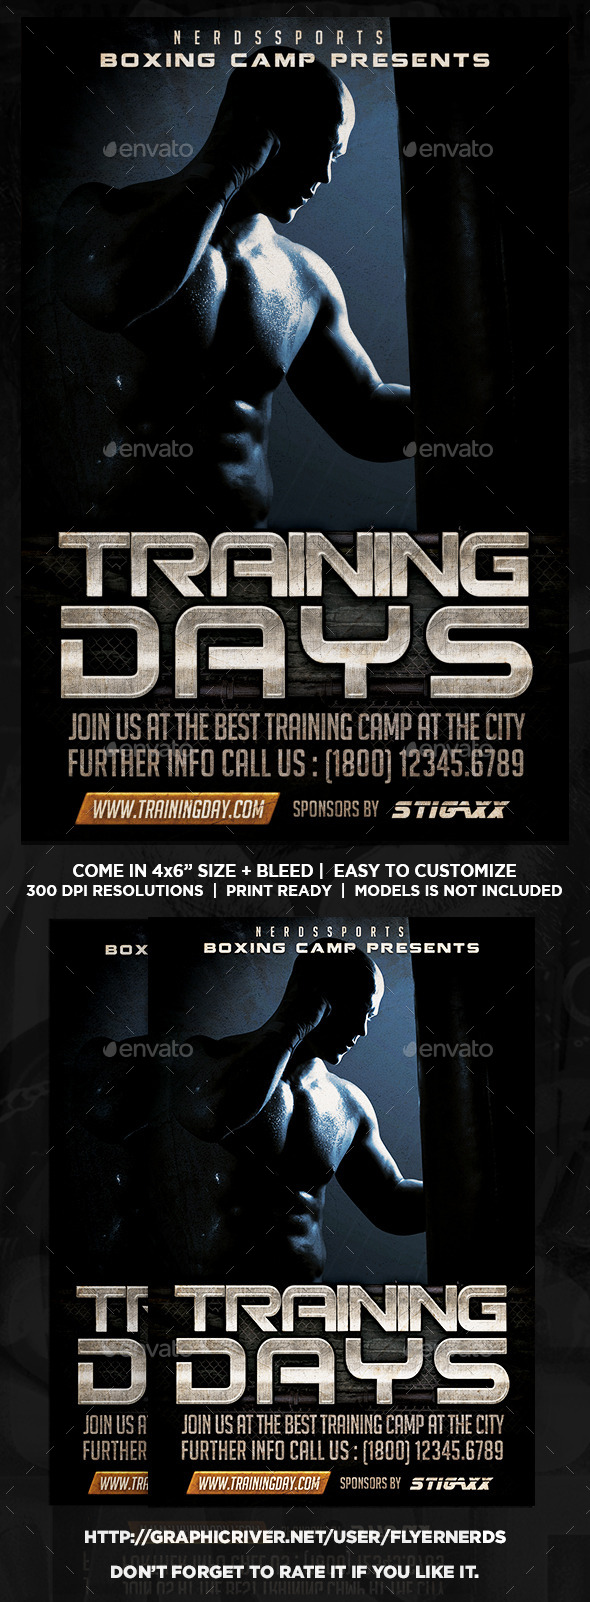 GraphicRiver Boxing Training Camp Sports Flyer 11129885